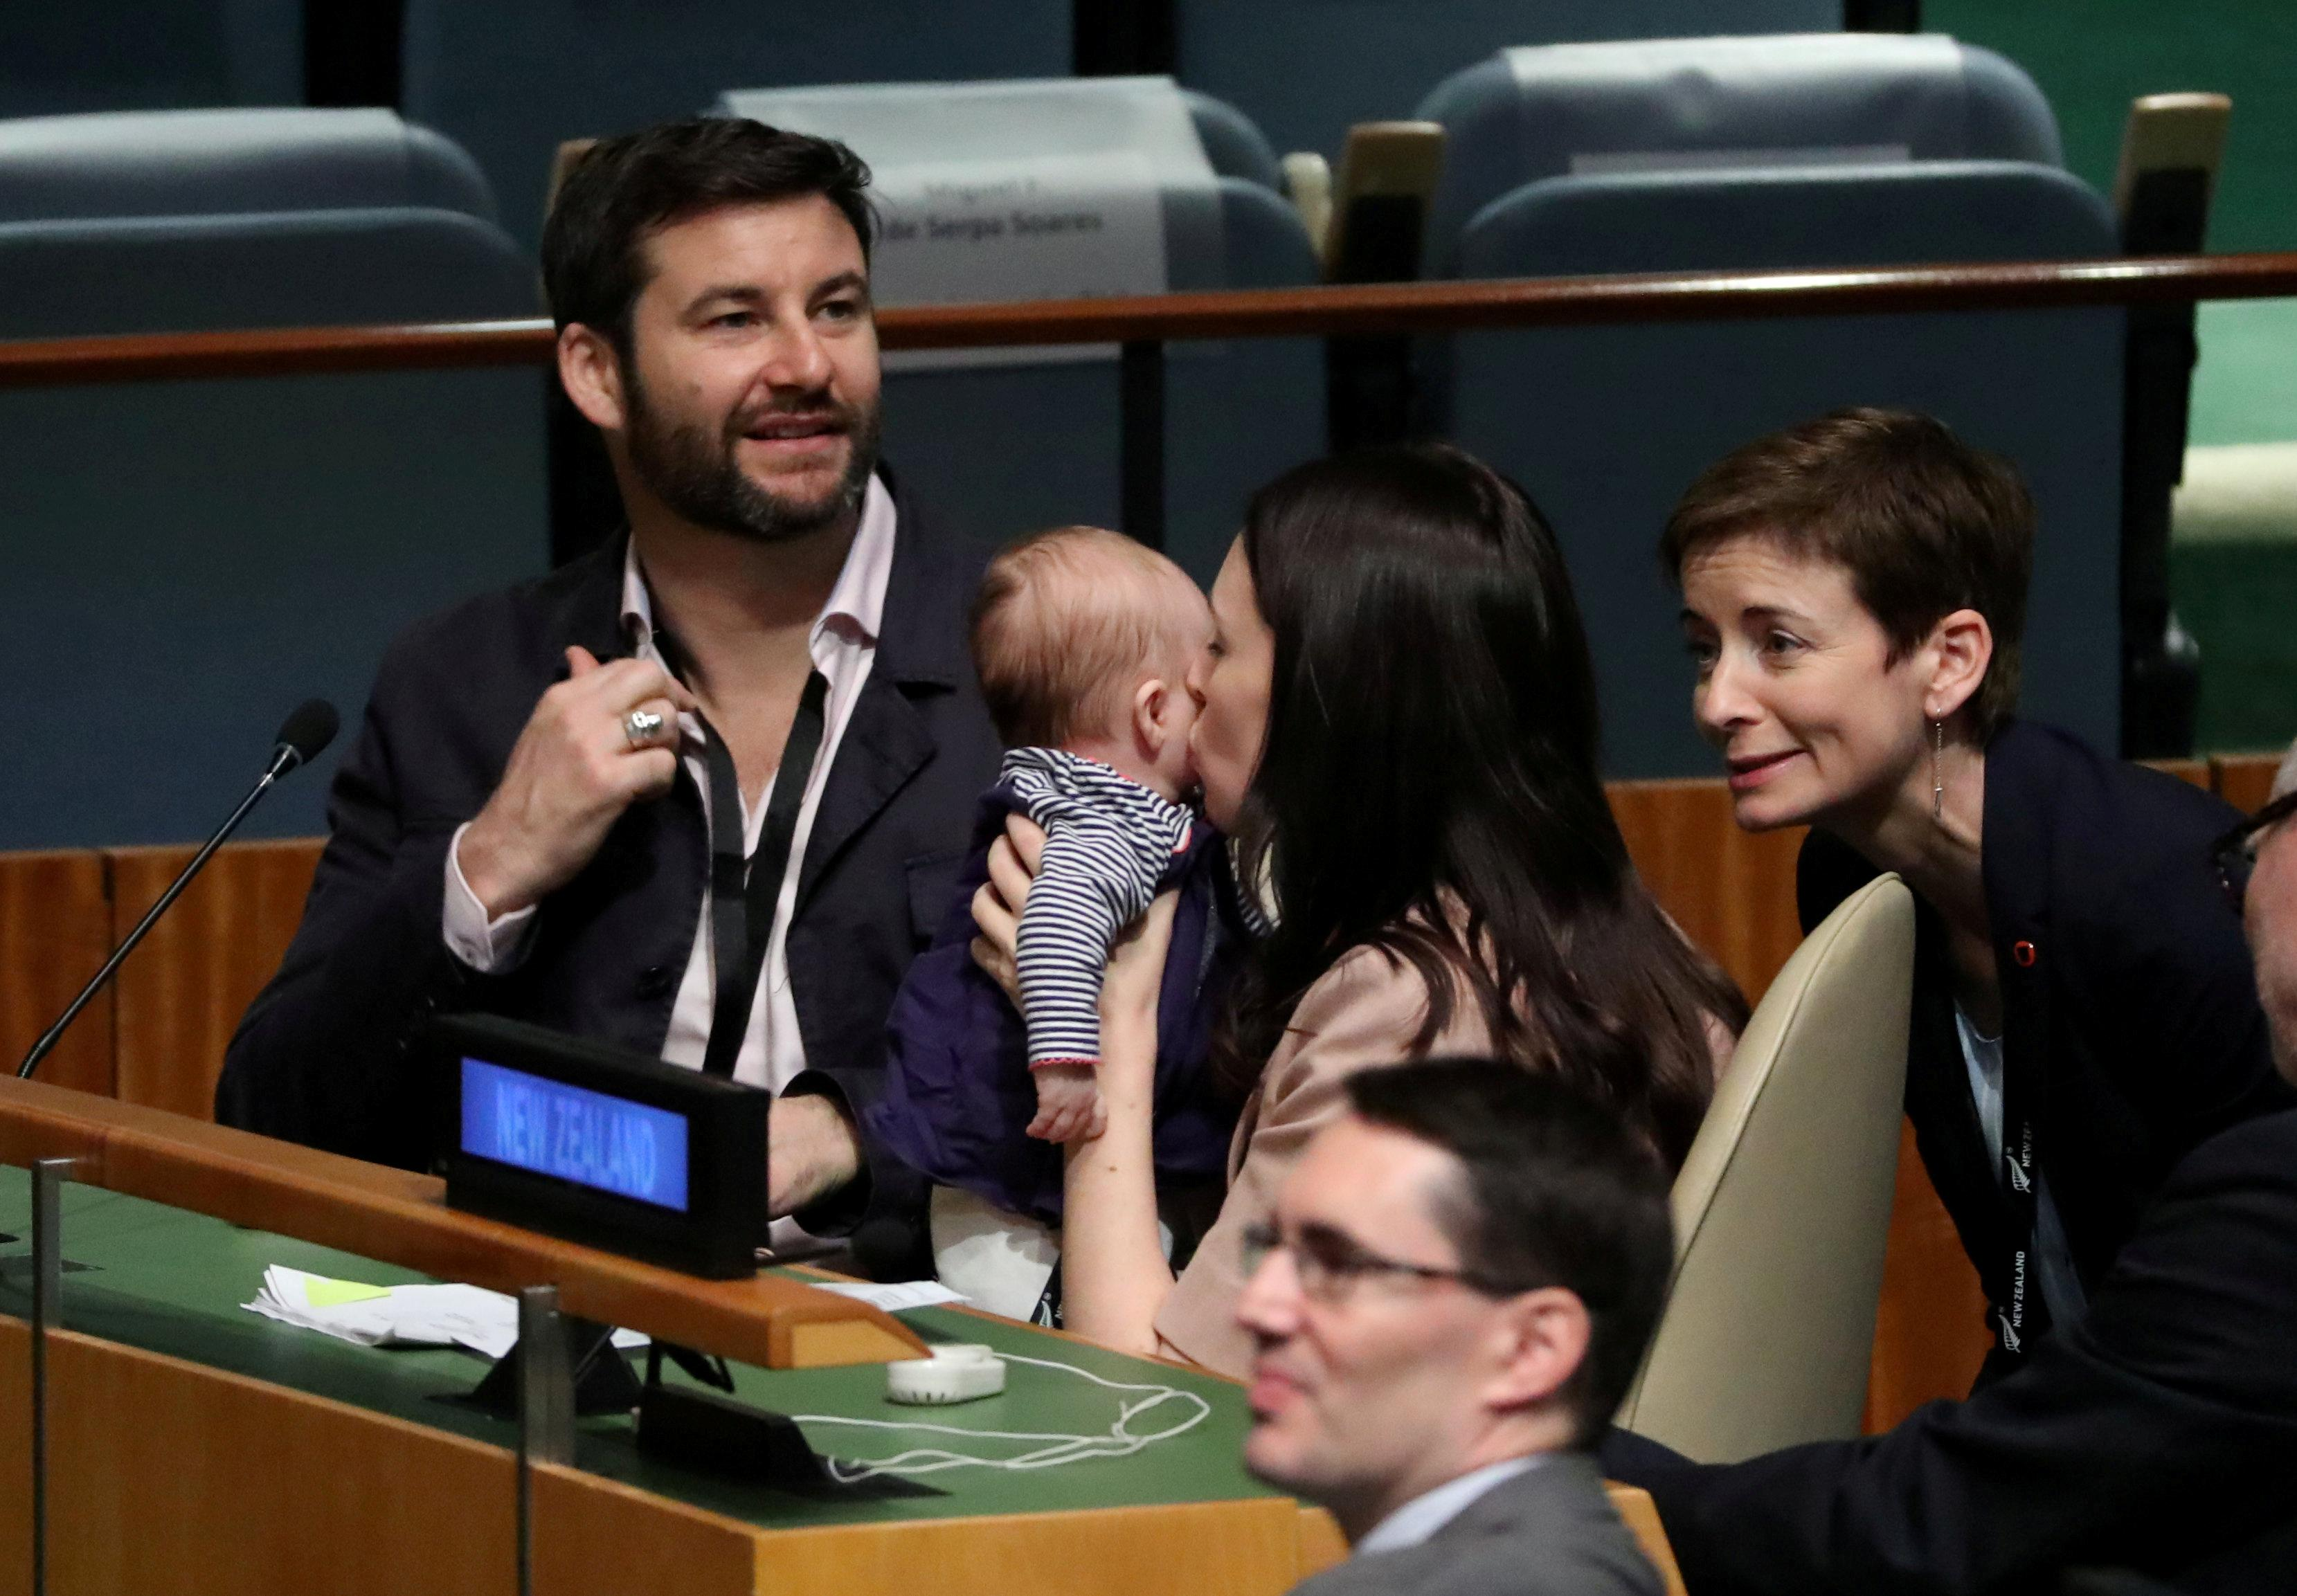 New Zealand Prime Minister Jacinda Ardern kisses her baby Neve after speaking at the Nelson Mandela Peace Summit during the 73rd United Nations General Assembly in New York, U.S., September 24, 2018. Carlo Allegri